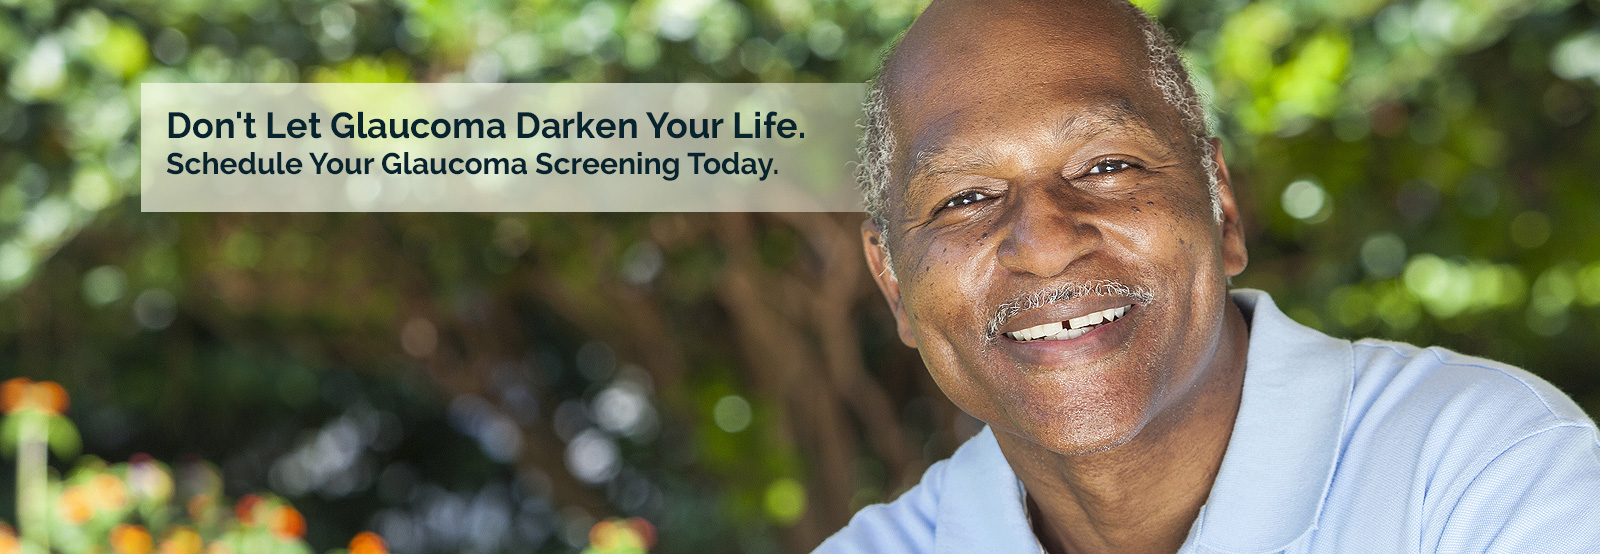 Don't Let Glaucoma Darken your Life